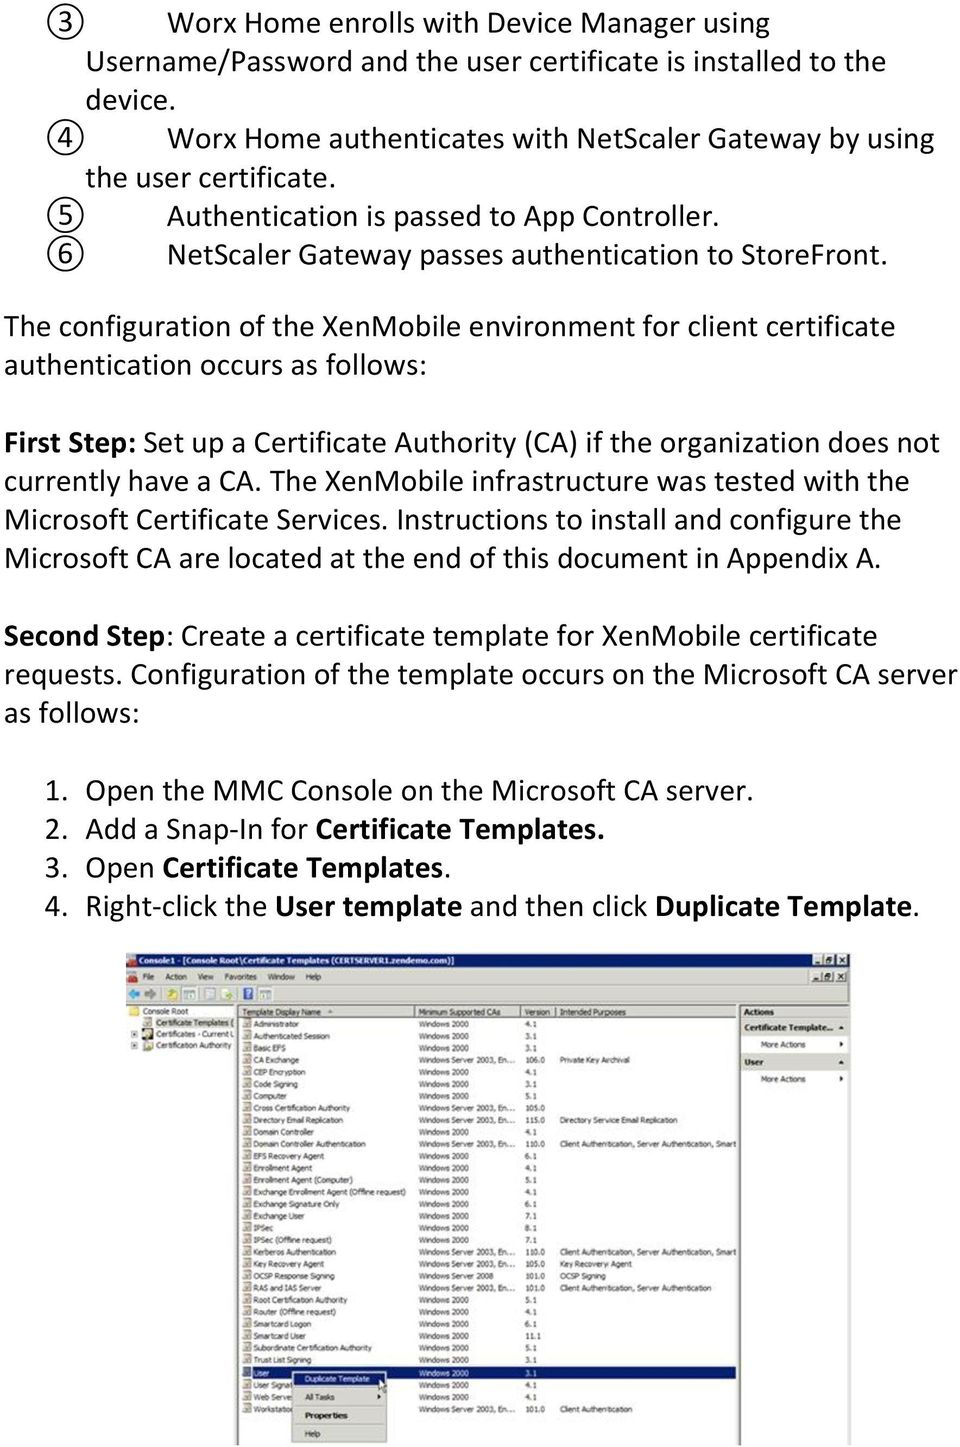 The configuration of the XenMobile environment for client certificate authentication occurs as follows: First Step: Set up a Certificate Authority (CA) if the organization does not currently have a